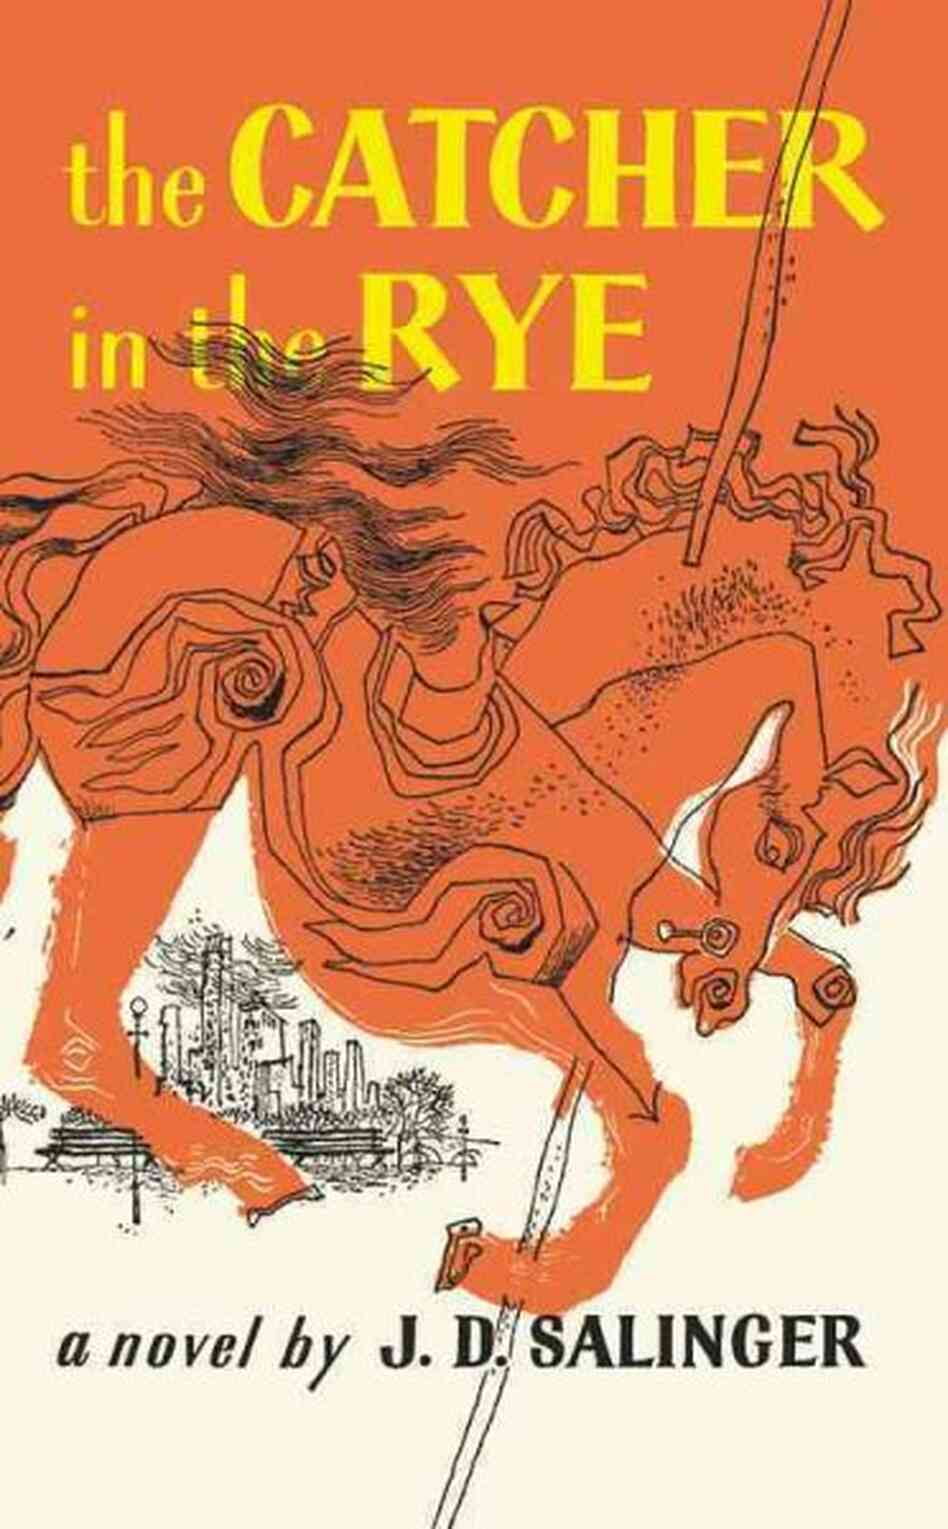 A Summary of the Novel, The Catcher in the Rye by J.D. Salinger